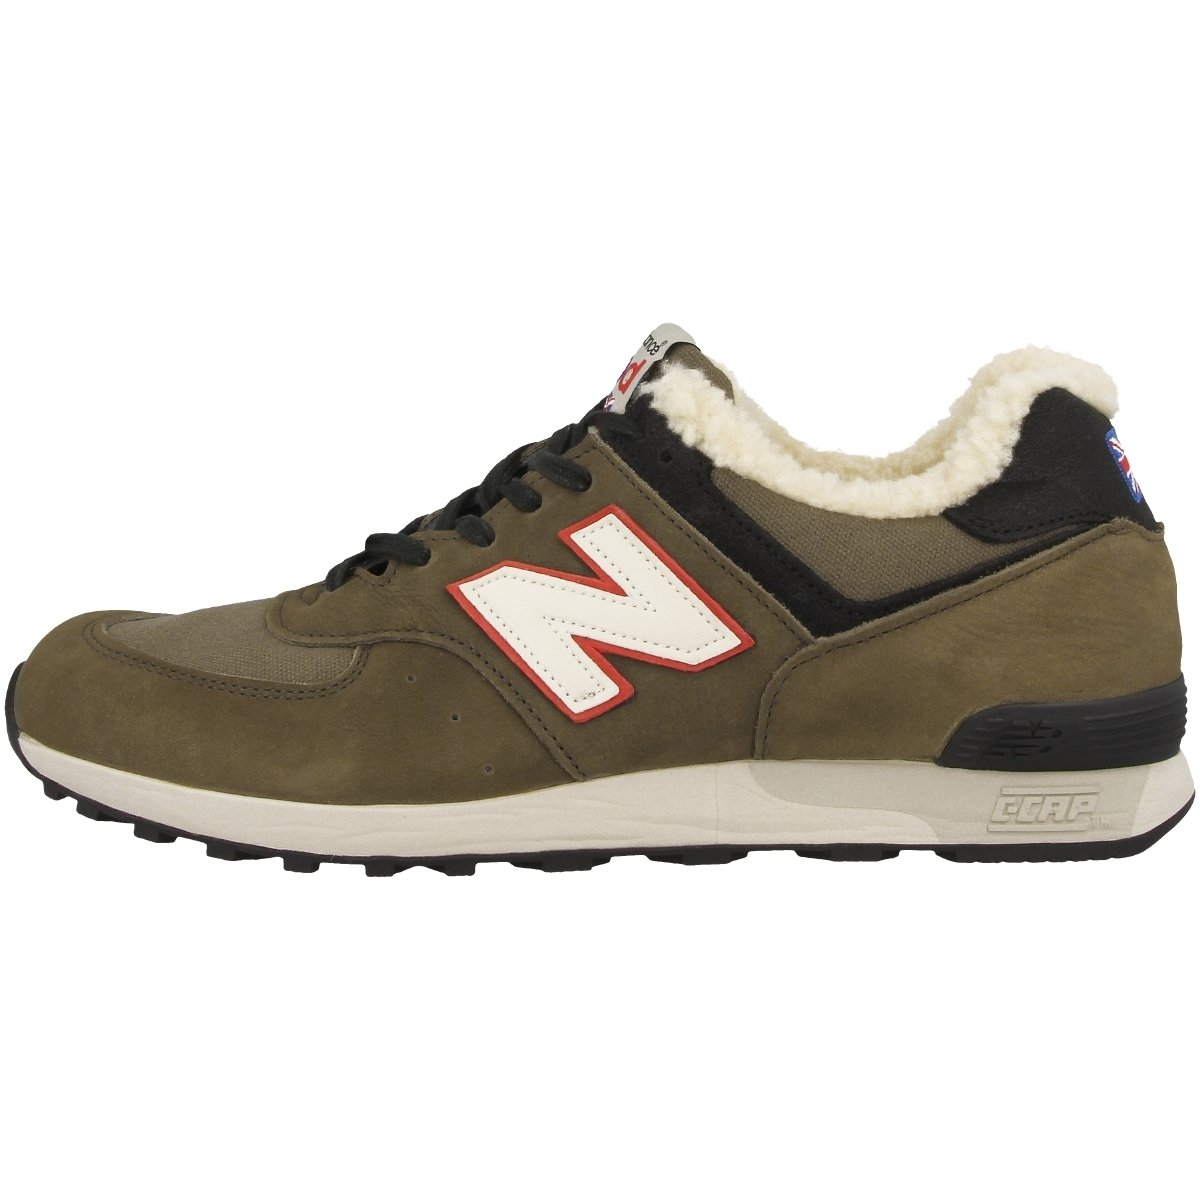 best loved 366b2 5981c New Balance M 576 MOD Made in UK Schuhe army green - 47, 5 ...